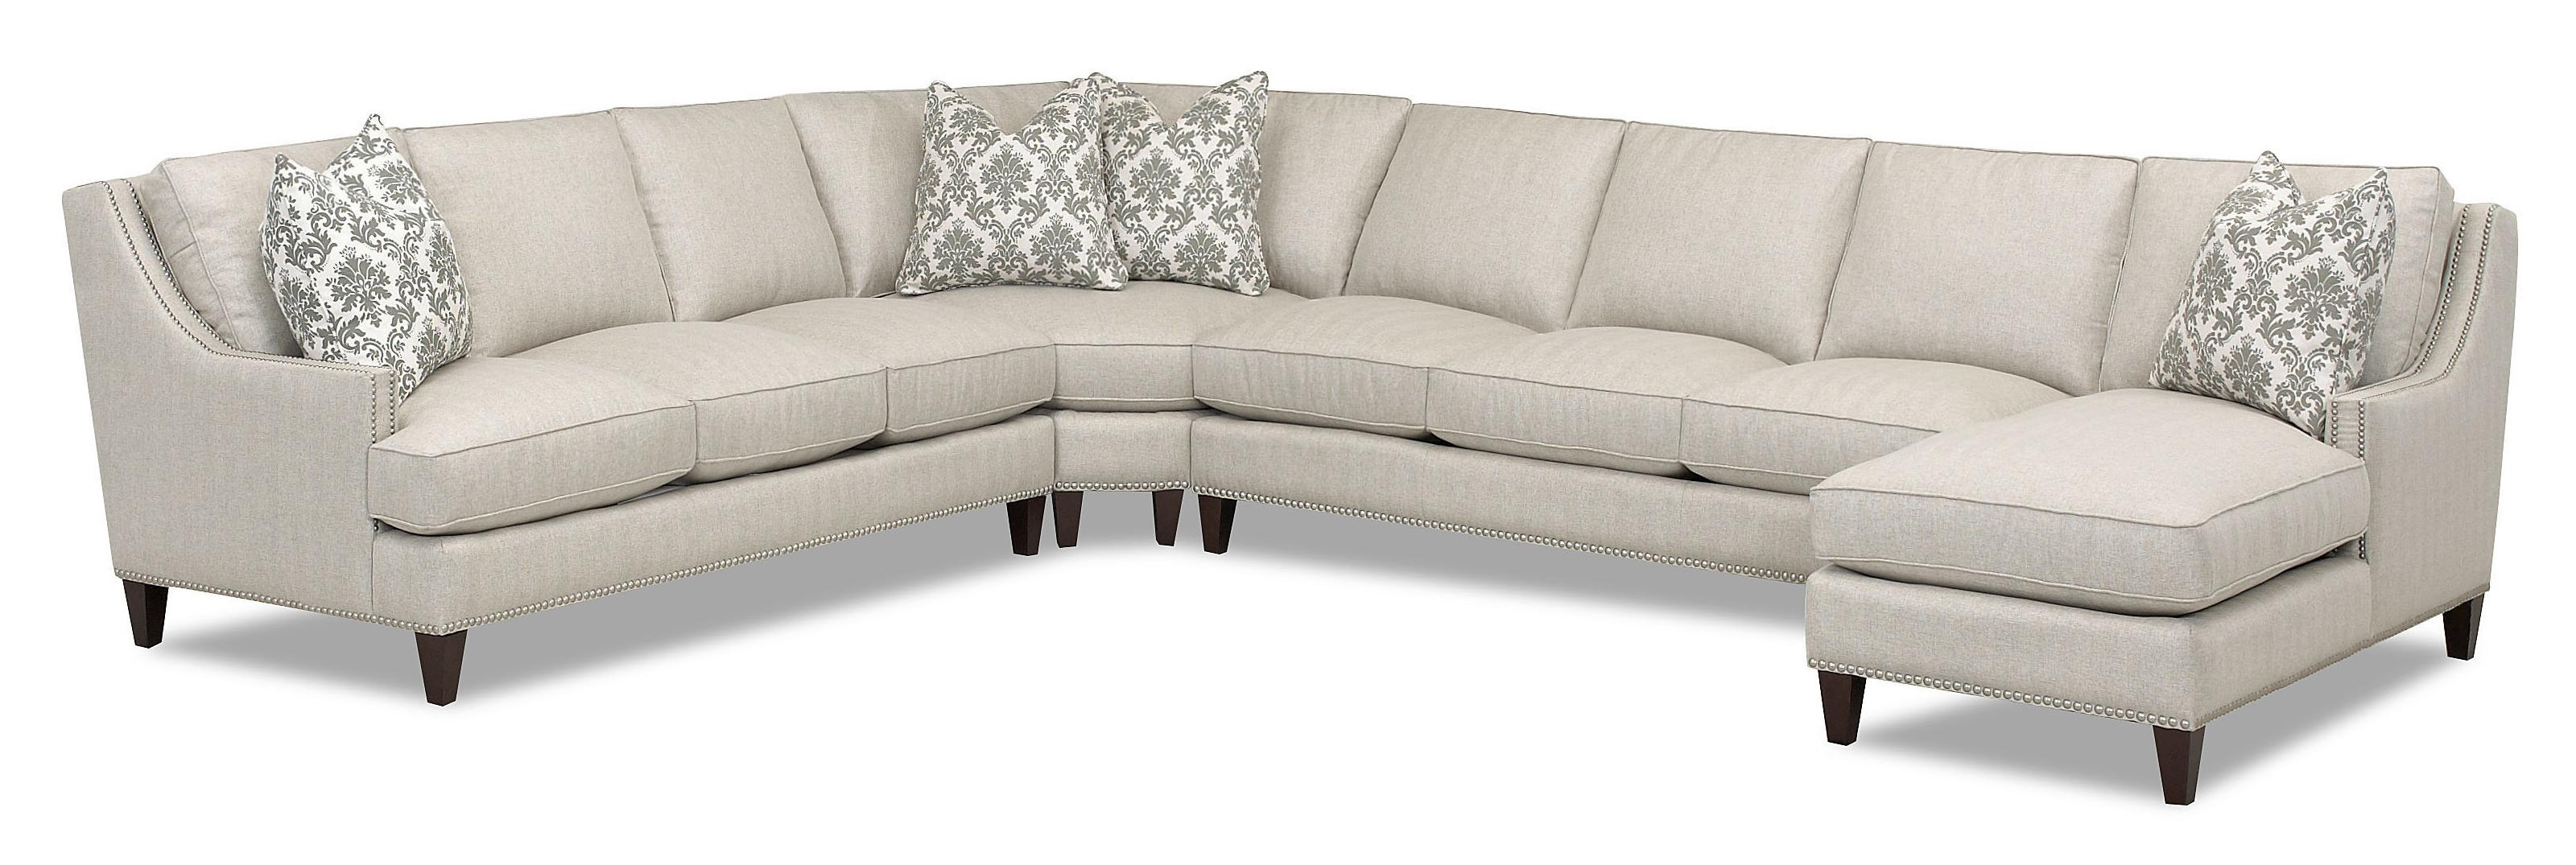 Transitional 4 piece sectional with chaise by klaussner for Amazon ca sectional sofa